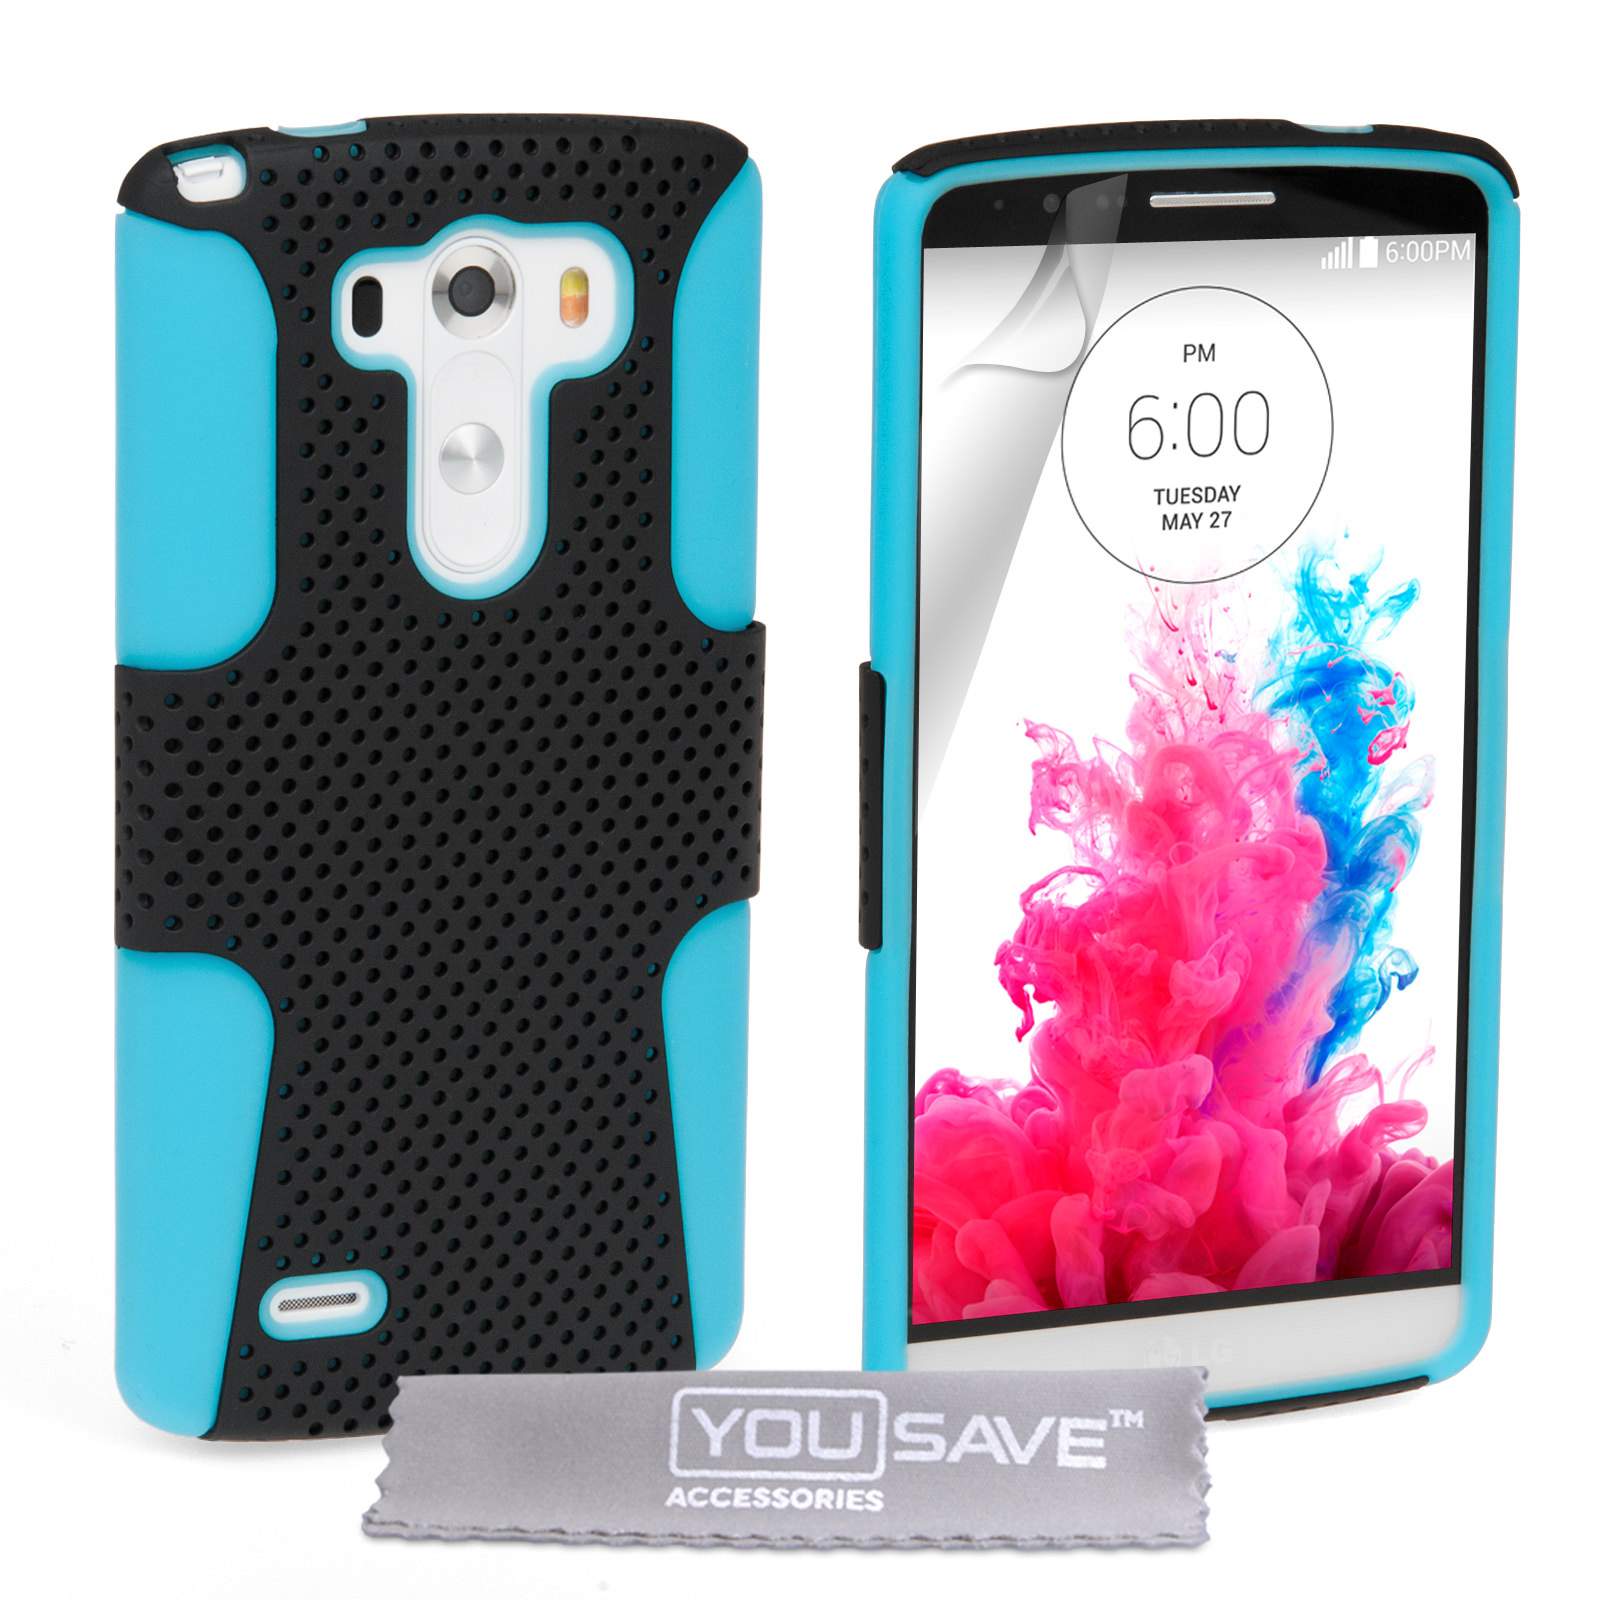 YouSave Accessories LG G3 Tough Mesh Combo Silicone Case - Blue-Black